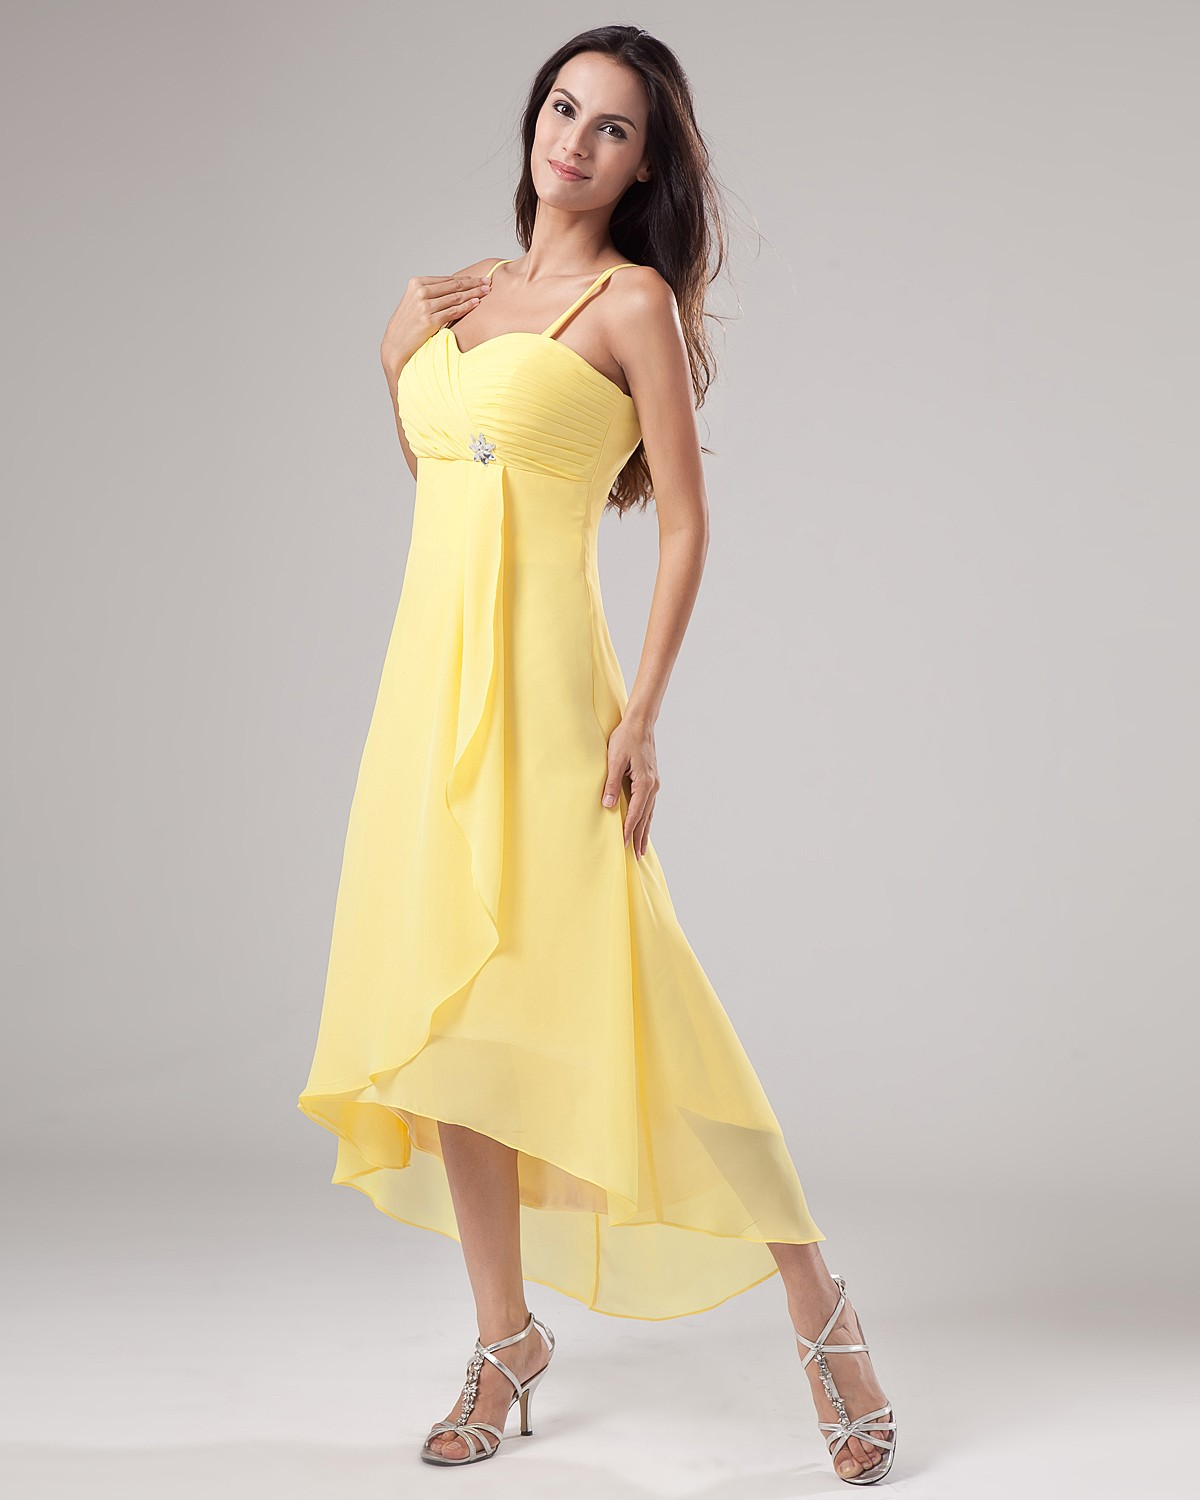 Great options of yellow bridesmaid dresses 24 dressi great options of yellow bridesmaid dresses ombrellifo Choice Image